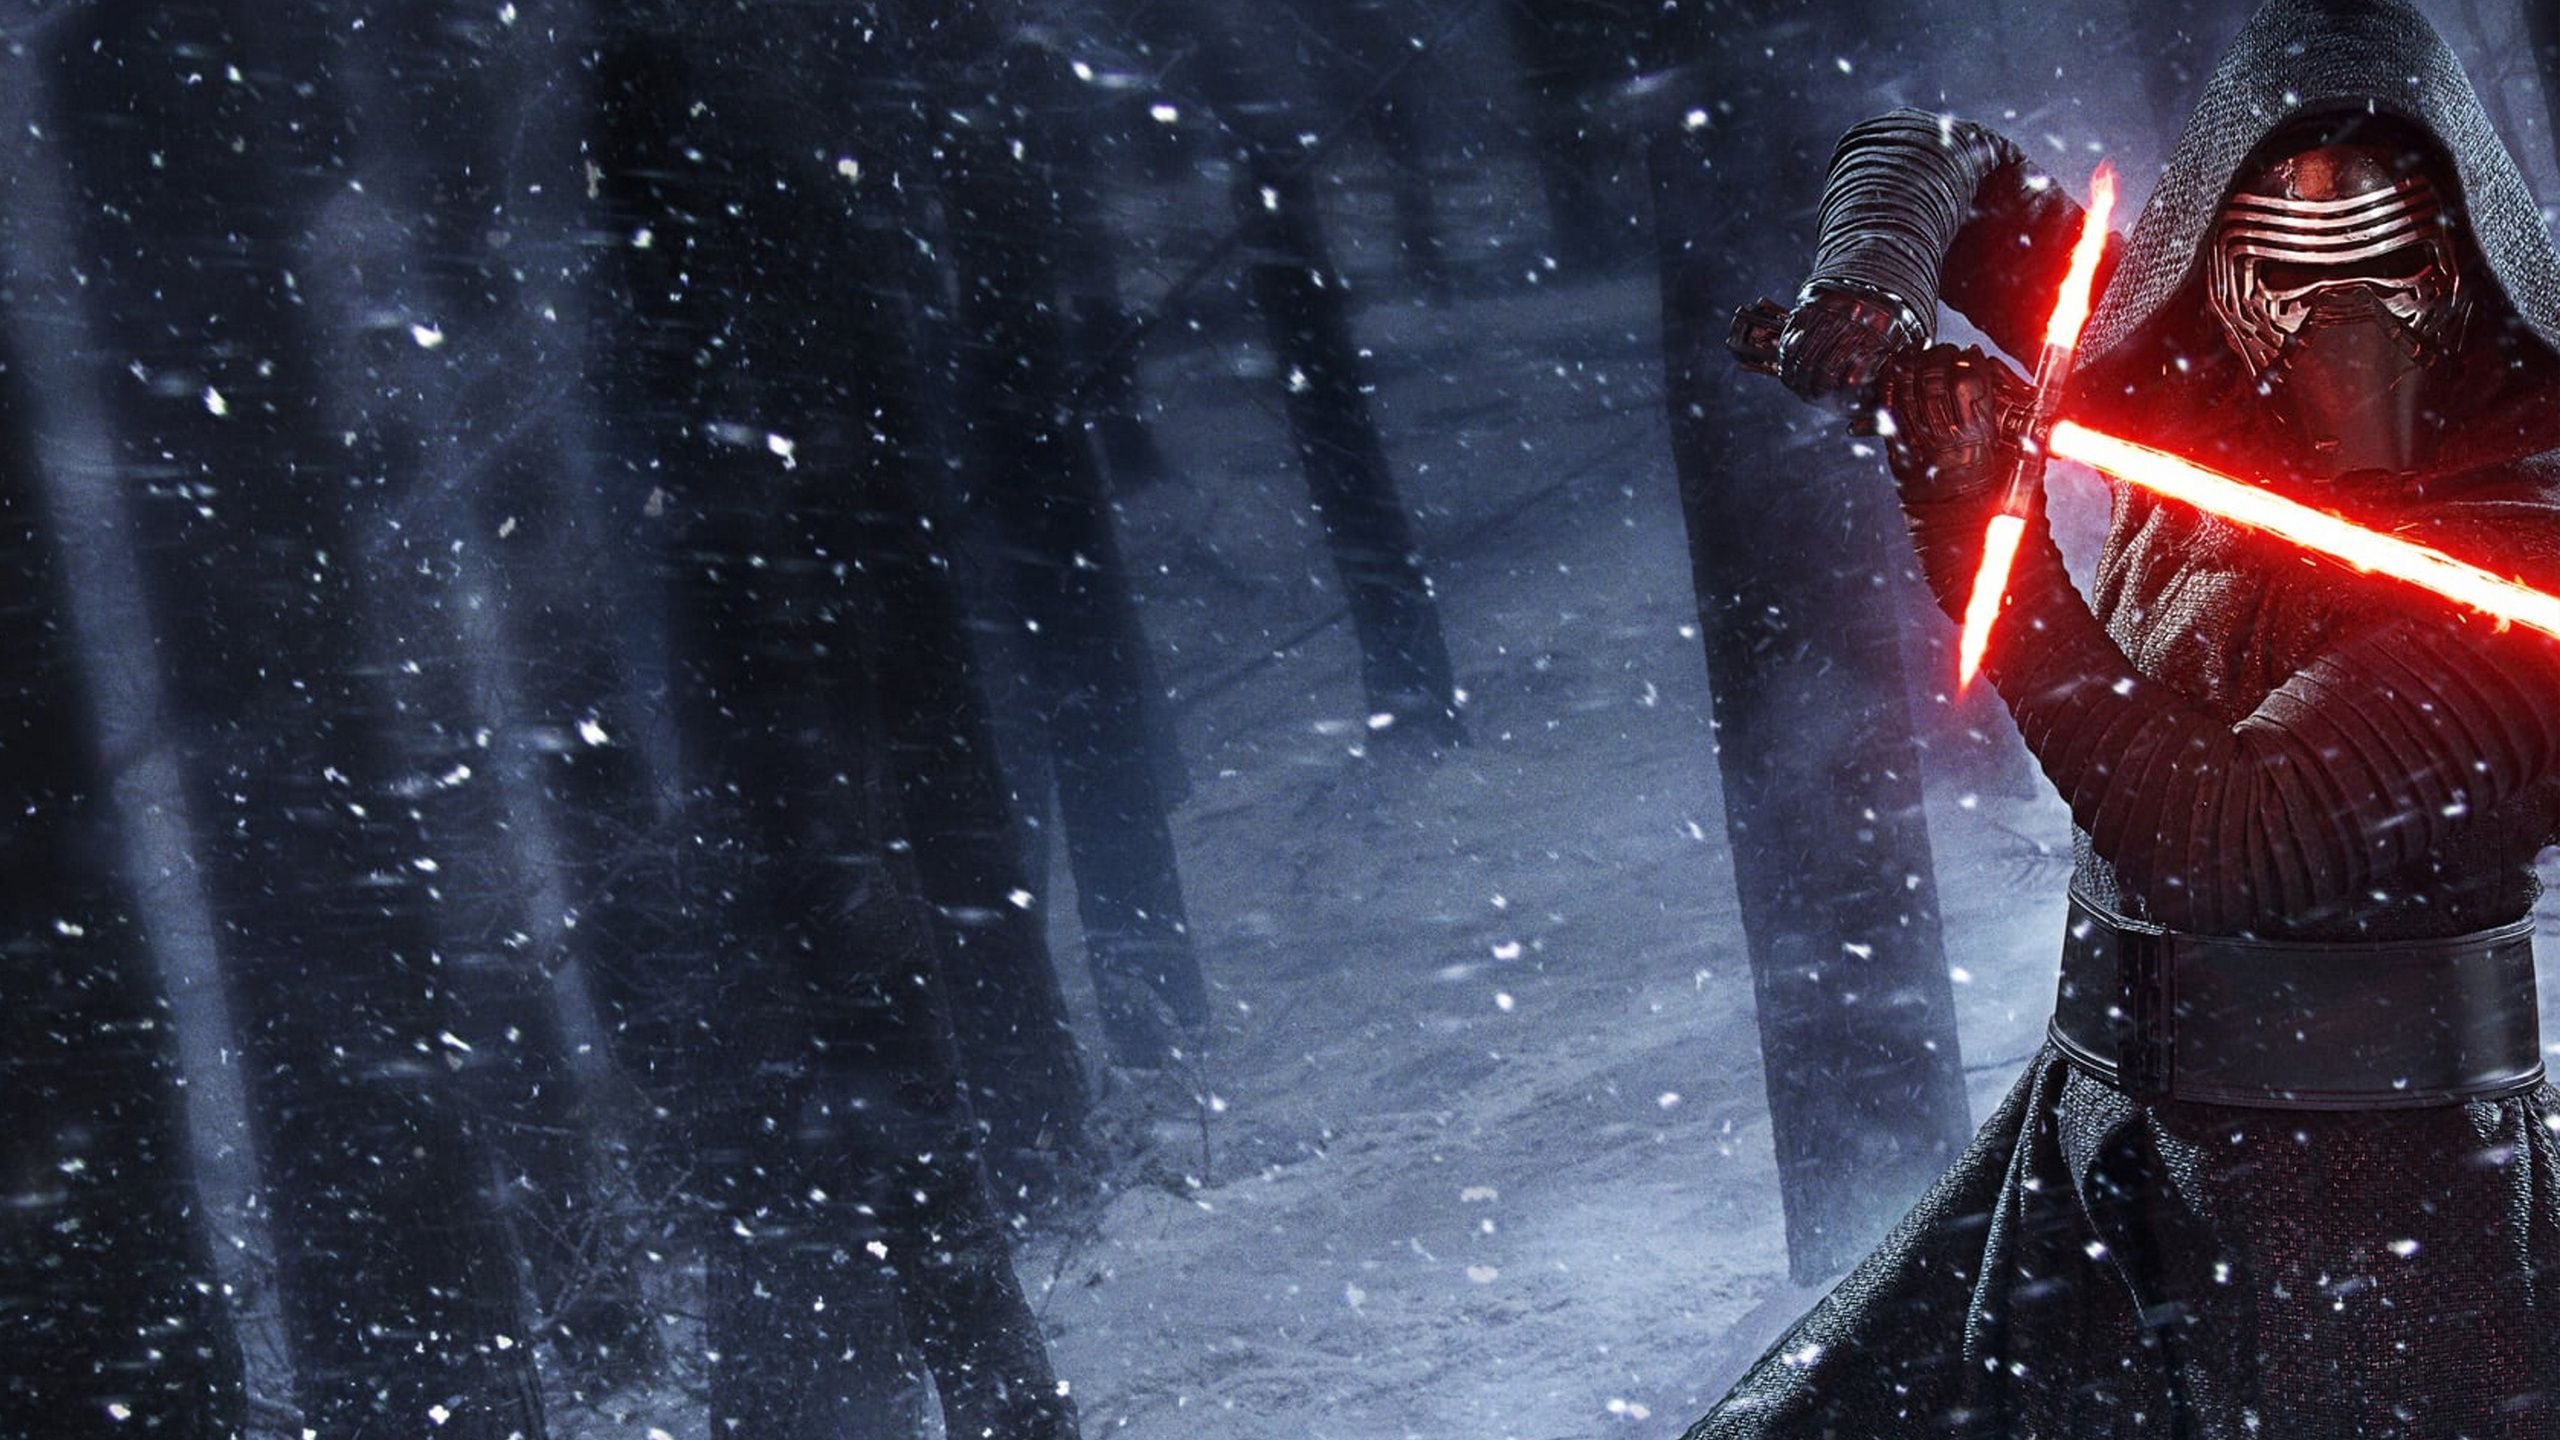 Star Wars High Resolution Wallpaper Star Wars Wallpaper Ren Star Wars Kylo Ren Wallpaper